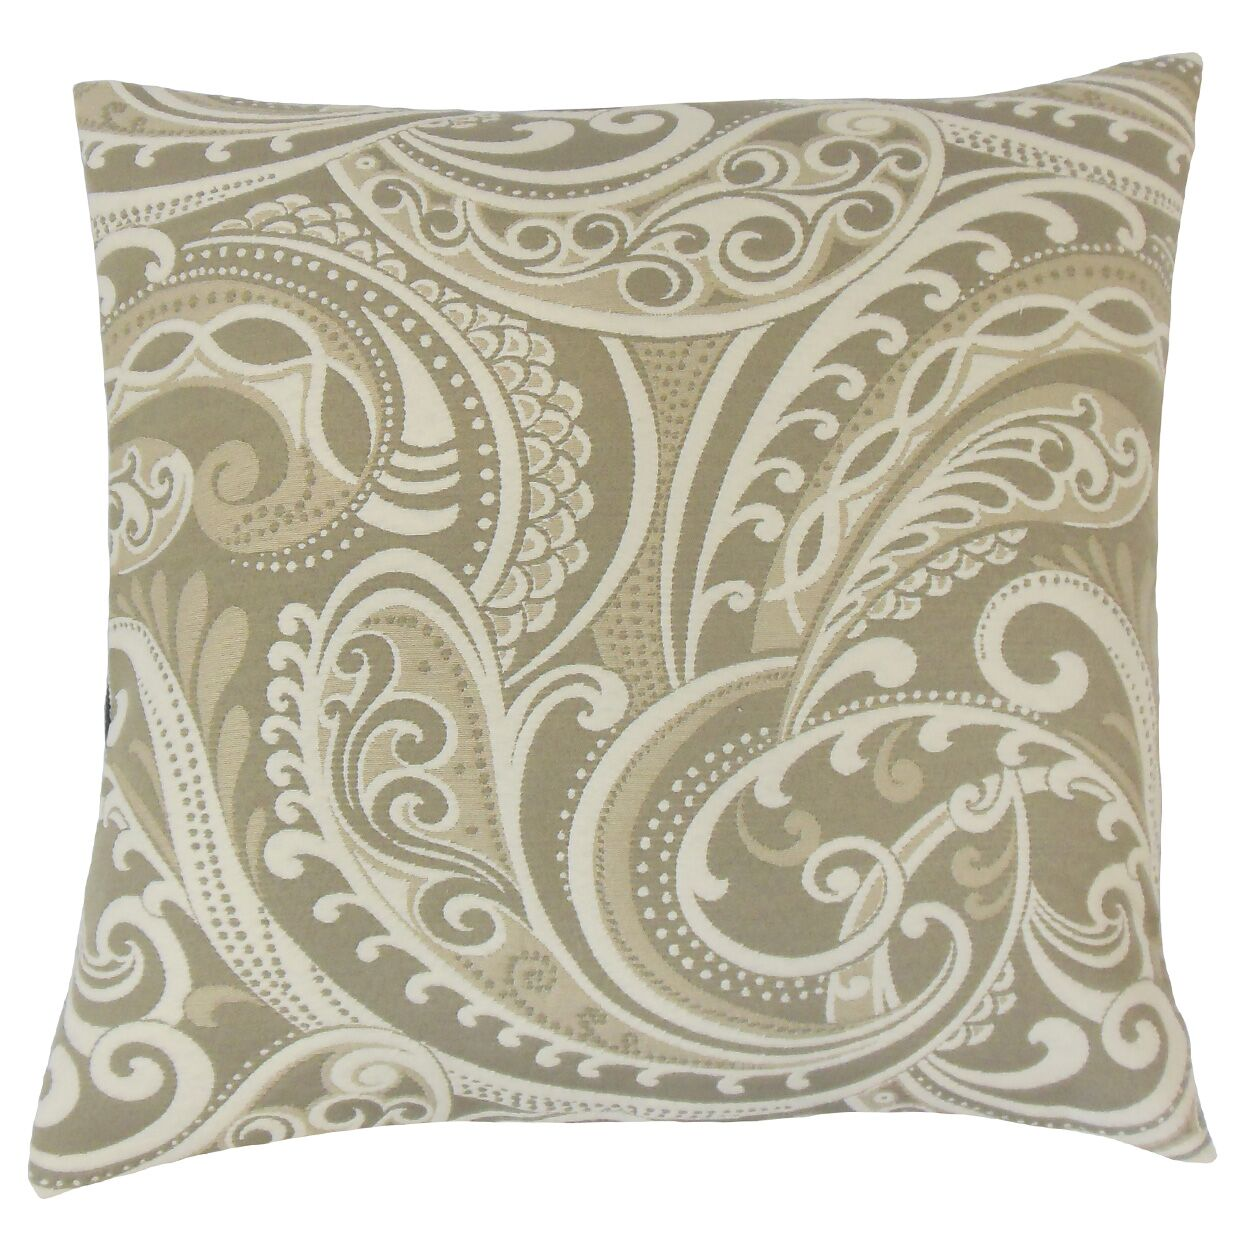 Natashaly Damask Bedding Sham Size: Queen, Color: Linen